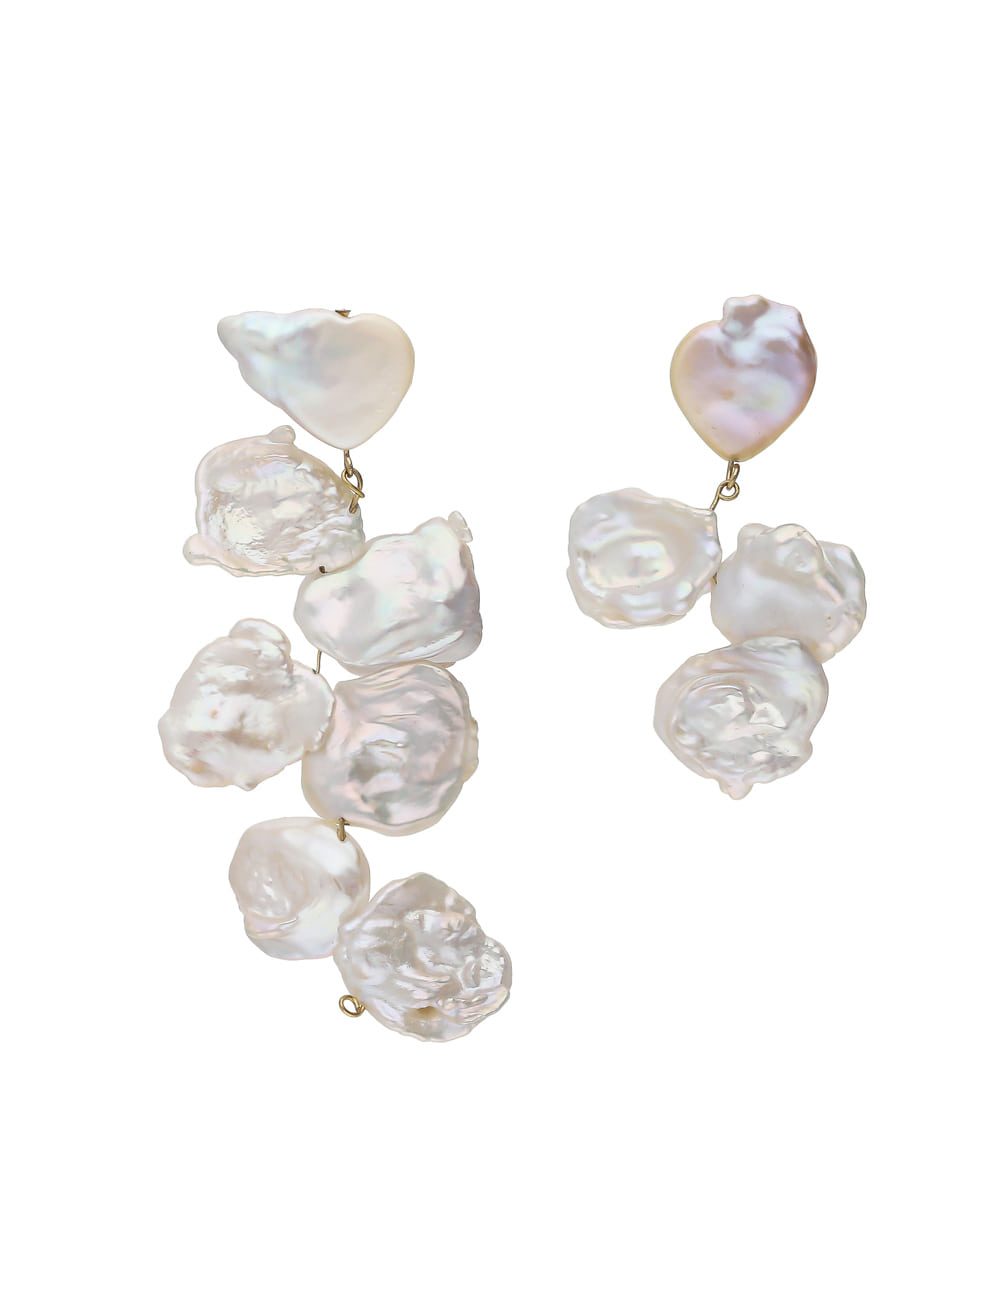 925 Silver Heart Nature Pearl Bold Dropped Earrings _ 볼드 담수진주 귀걸이 라비쉬에